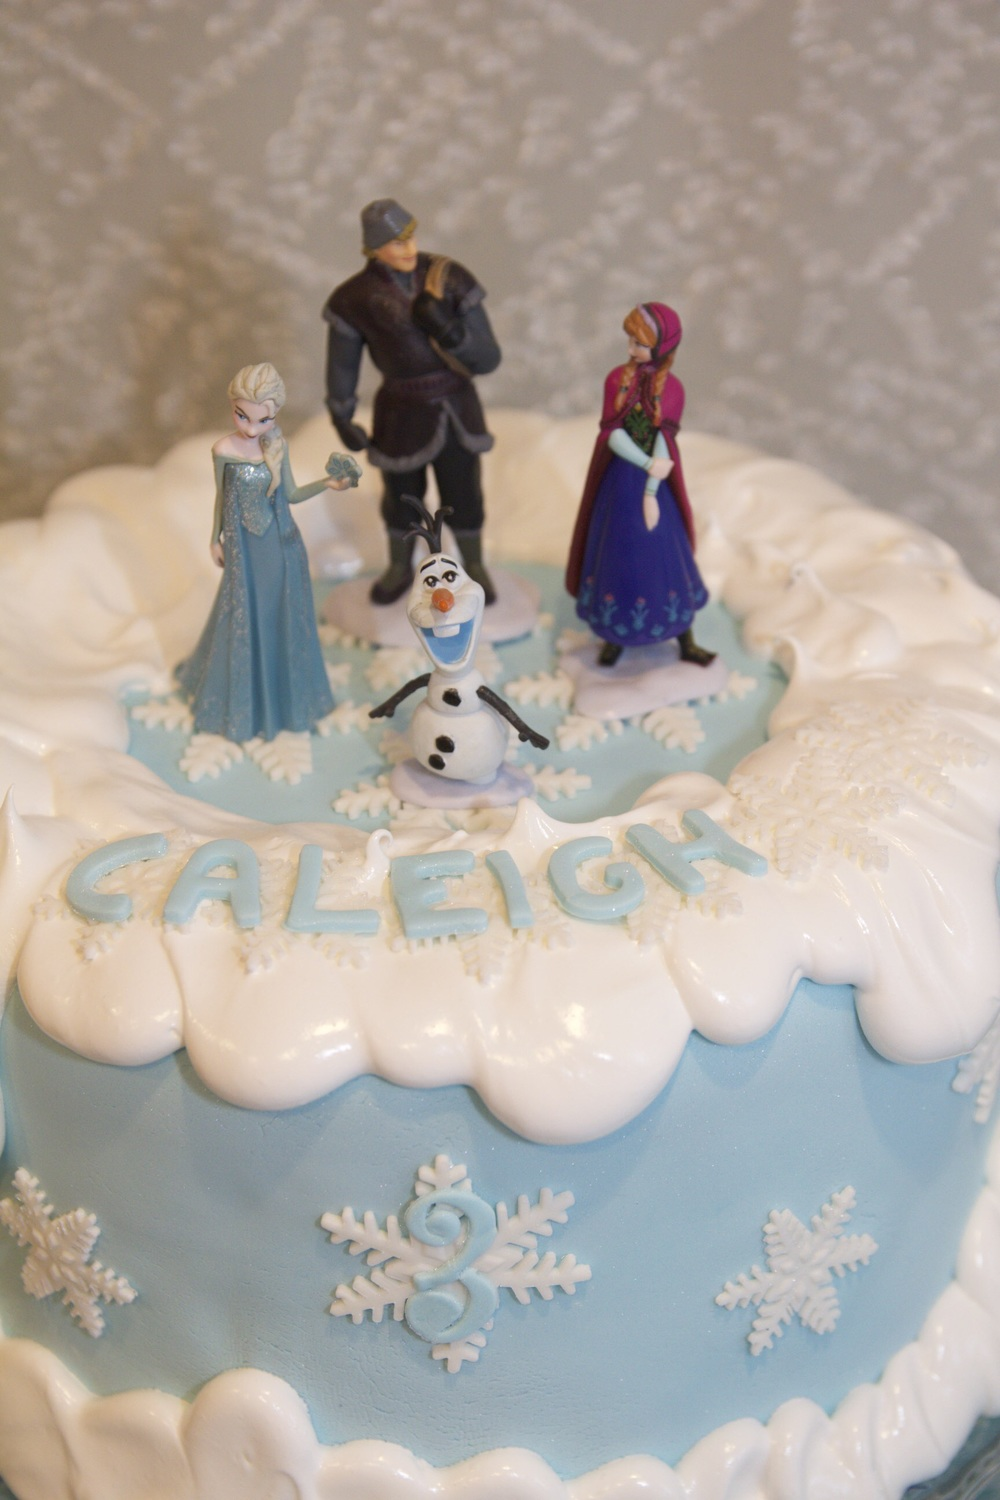 Anna, Elsa, Olaf, and Kristoff proudly on top of the cake while I left that other guys off because...well...you know